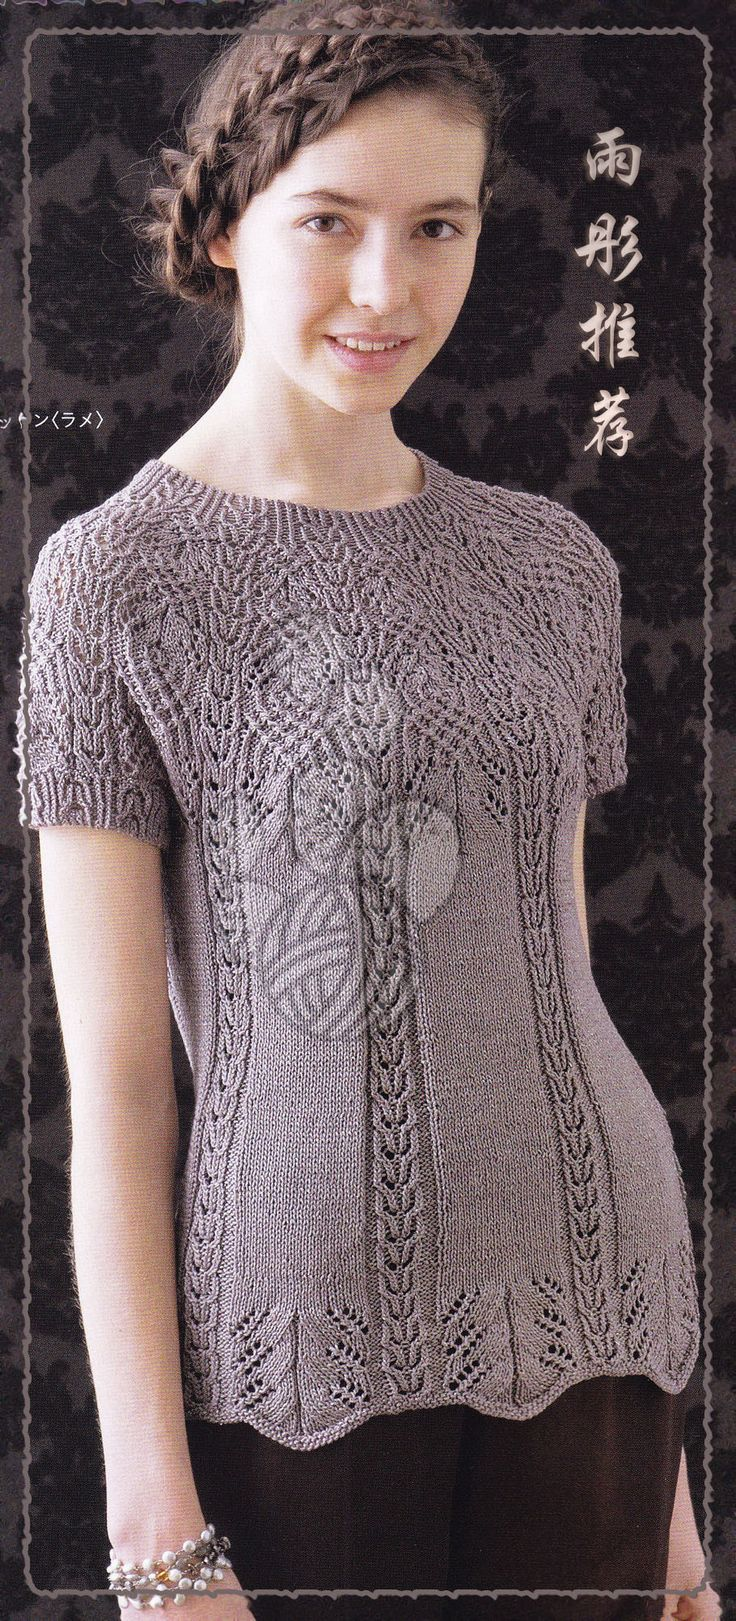 282 best strickenknitt images on pinterest blouses boleros and knit top with diagrams this type of relief pattern is perfect for high definition yarns as cotton with silk or bamboo bankloansurffo Choice Image